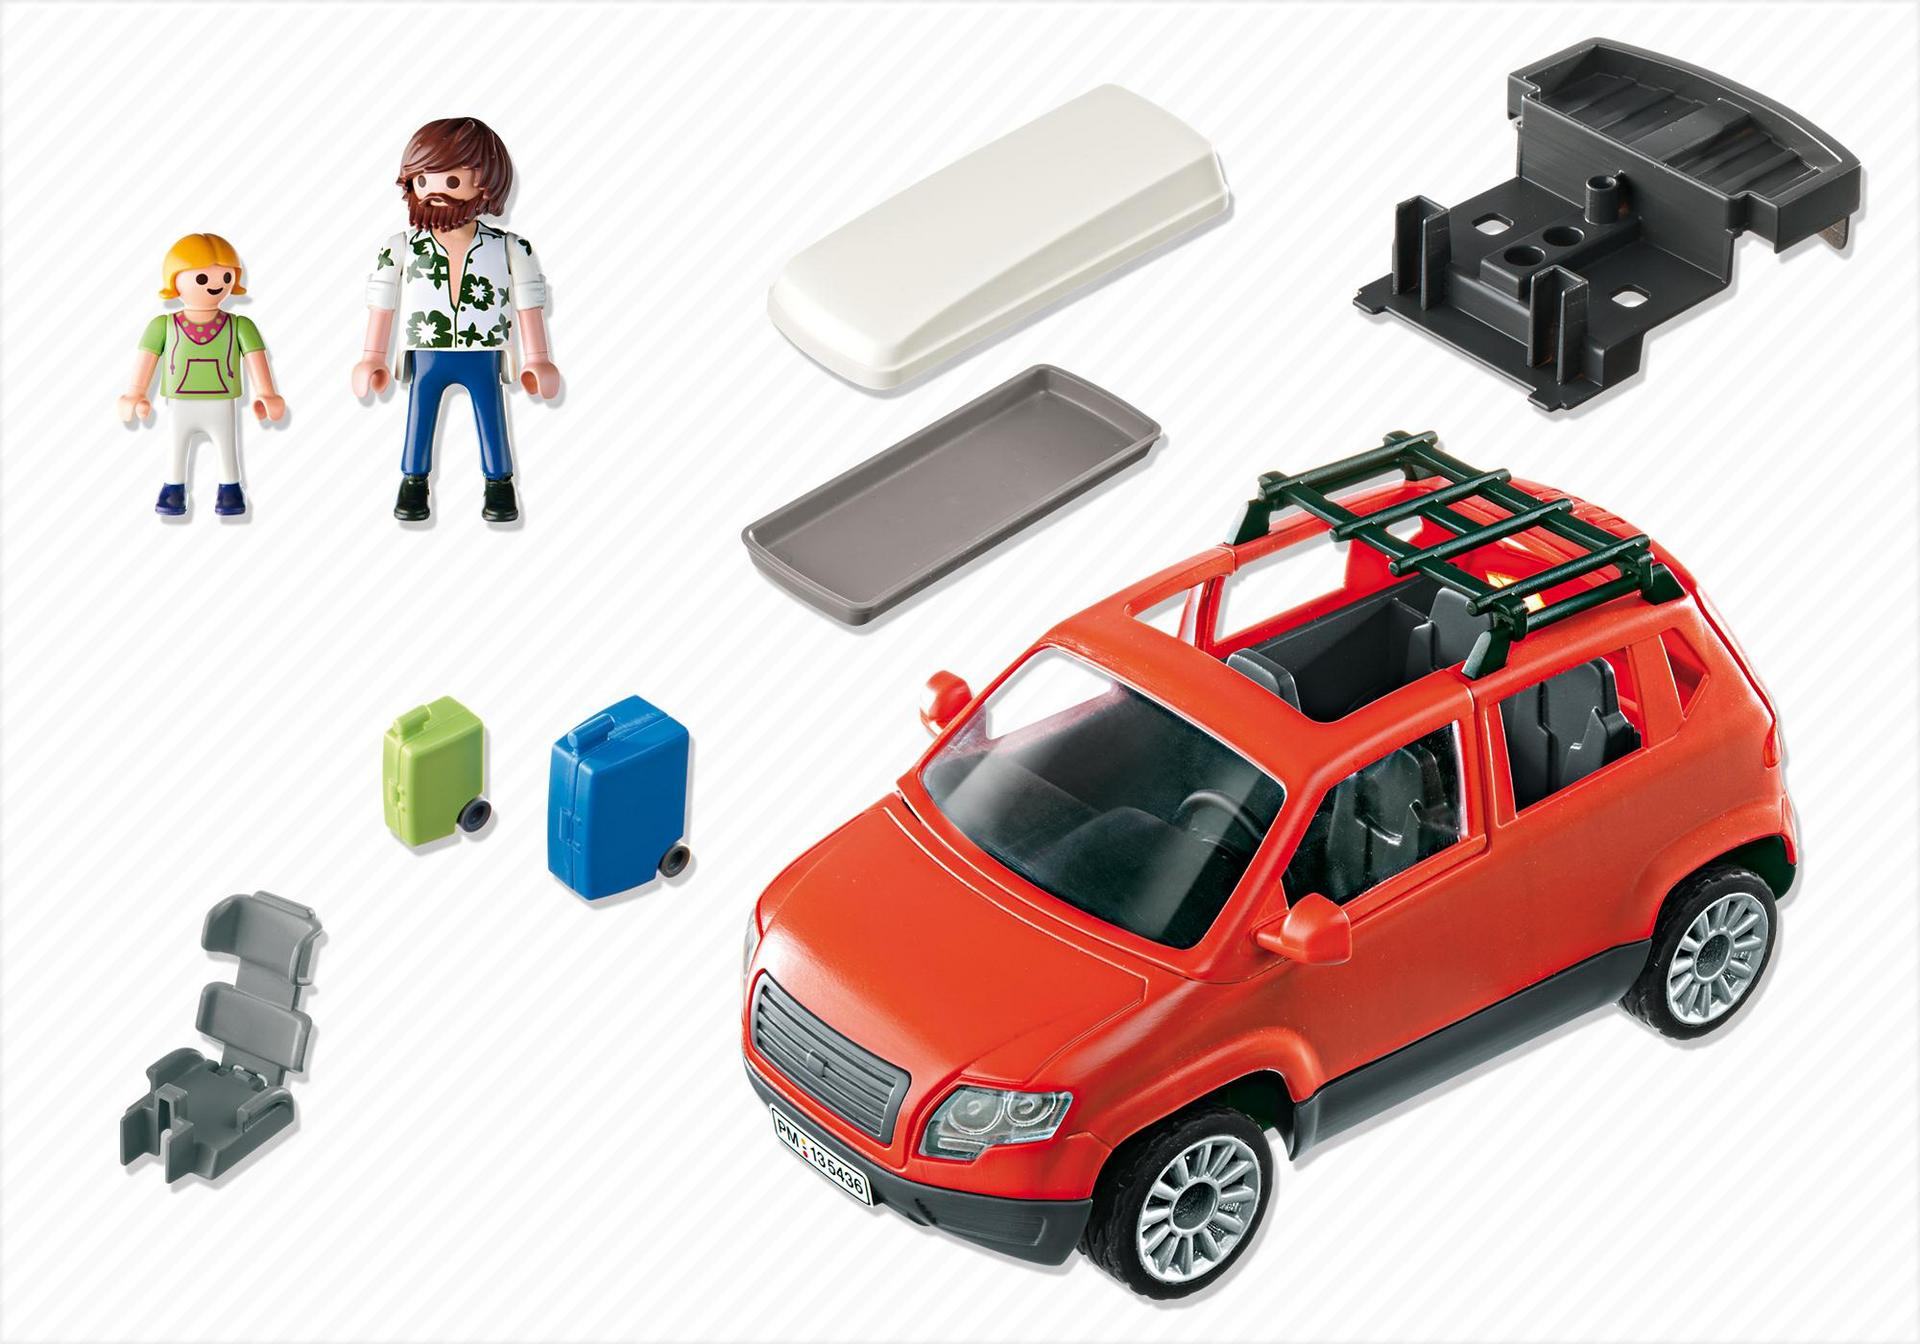 voiture avec coffre de toit 5436 playmobil france. Black Bedroom Furniture Sets. Home Design Ideas